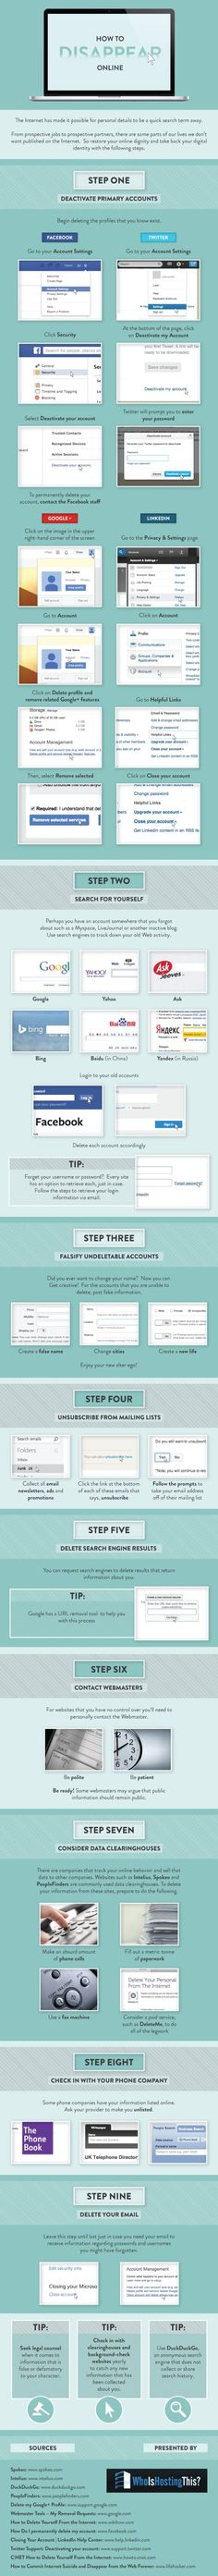 This #Infographic Shows You How to Delete Yourself from the Internet - lots of info here, I like how it's easy to read in part because of the soft blue hues